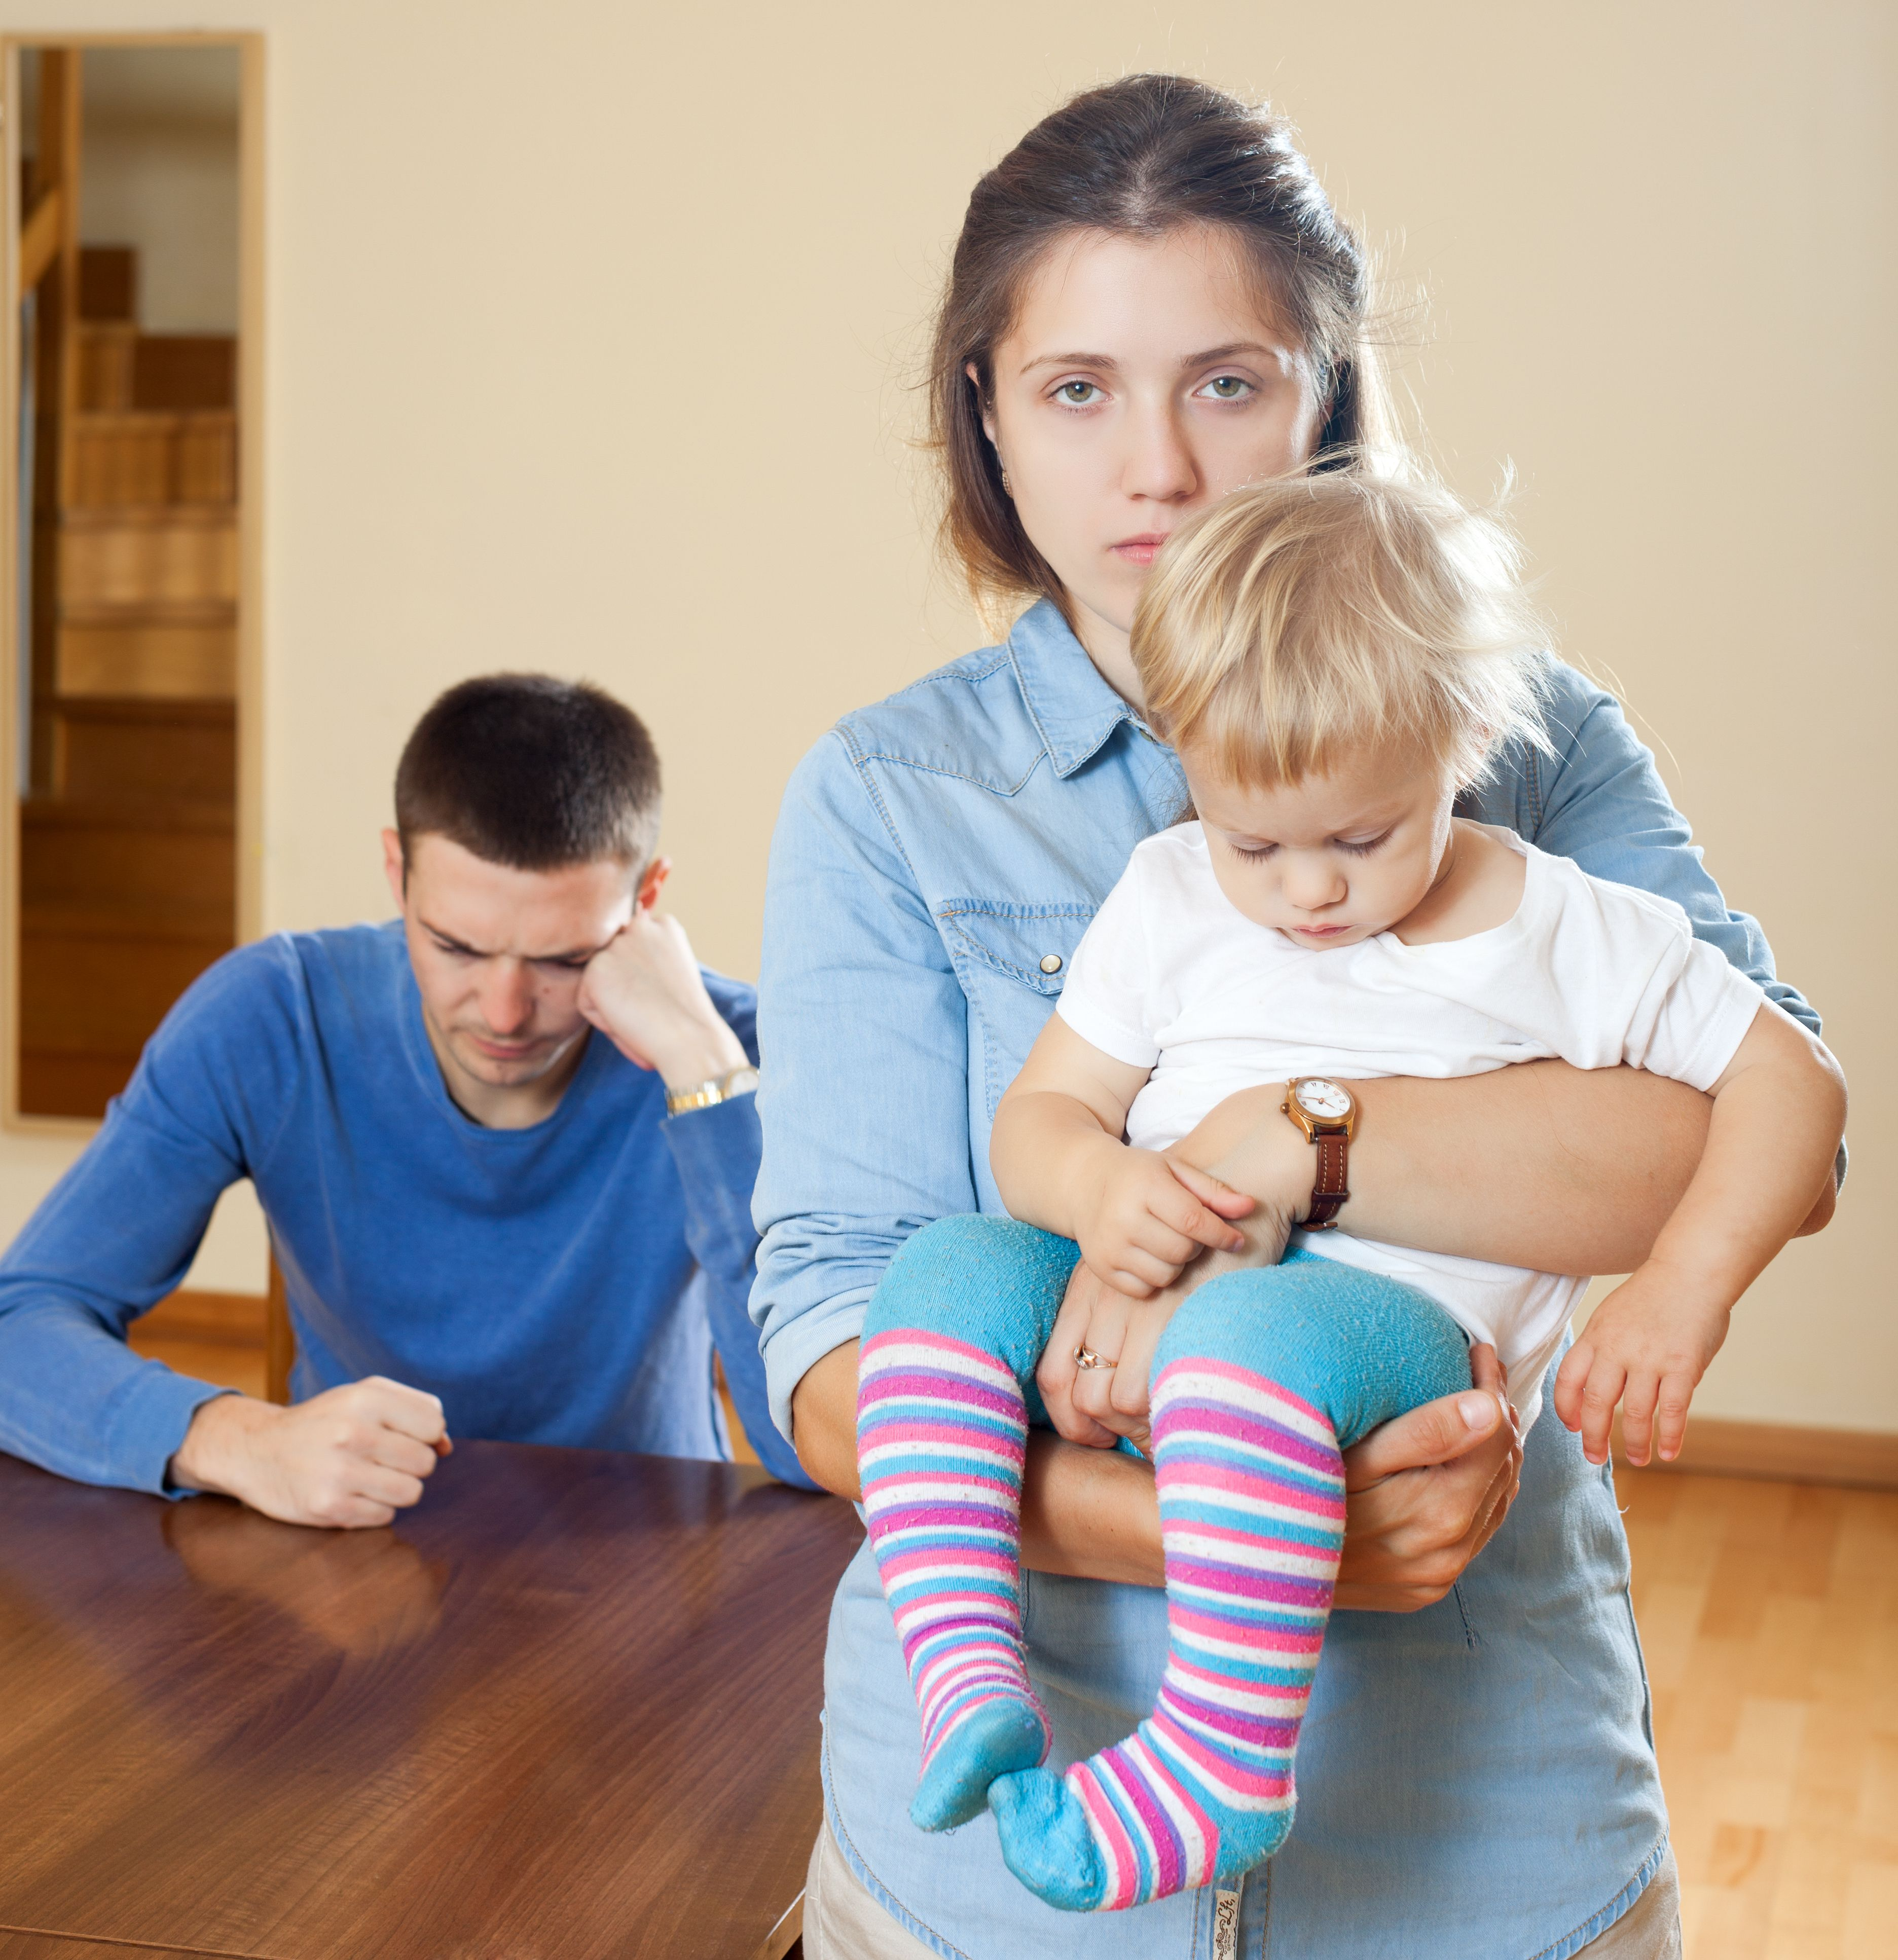 A mother holding her child, while the dad sits behind.   Source: Shutterstock